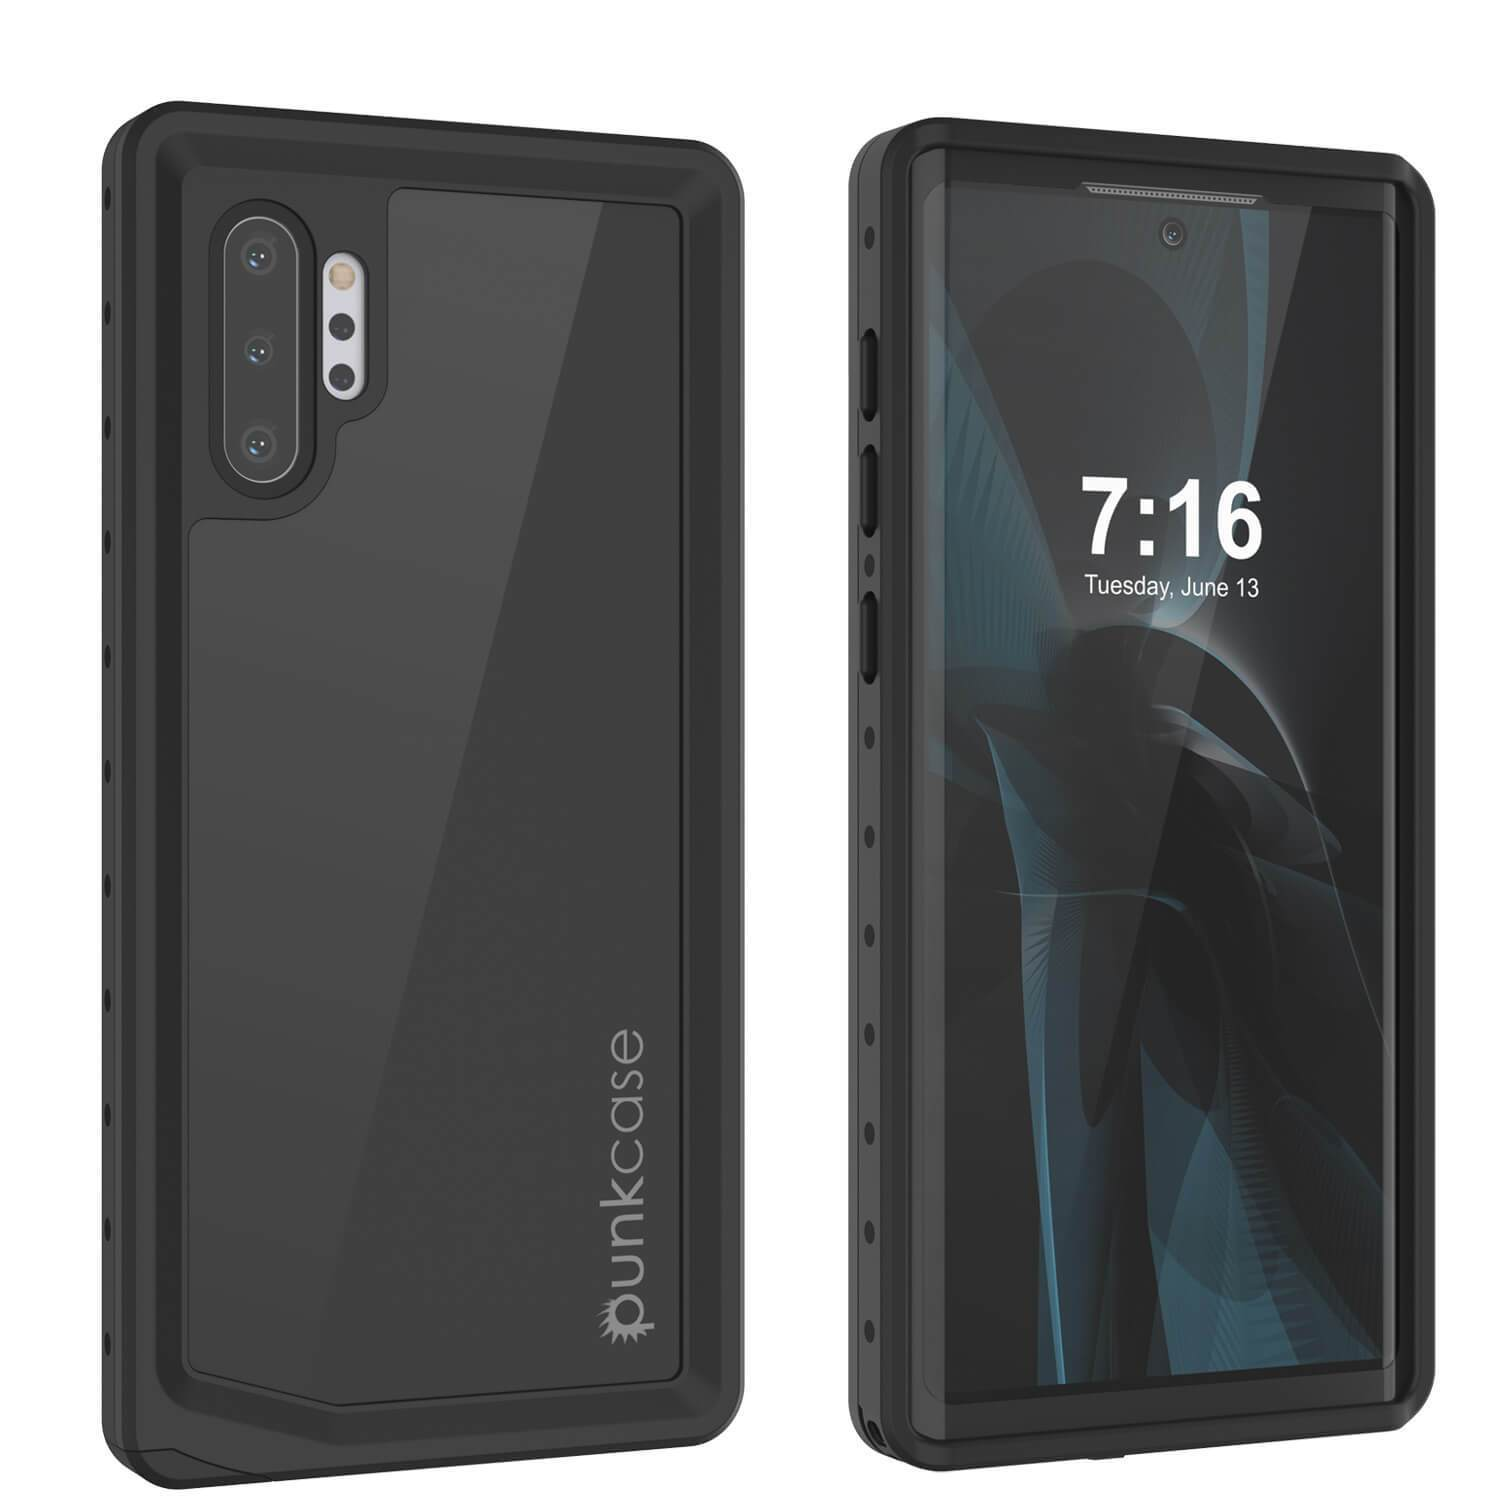 Galaxy Note 10+ Plus Waterproof Case, Punkcase Studstar Black Thin Armor Cover